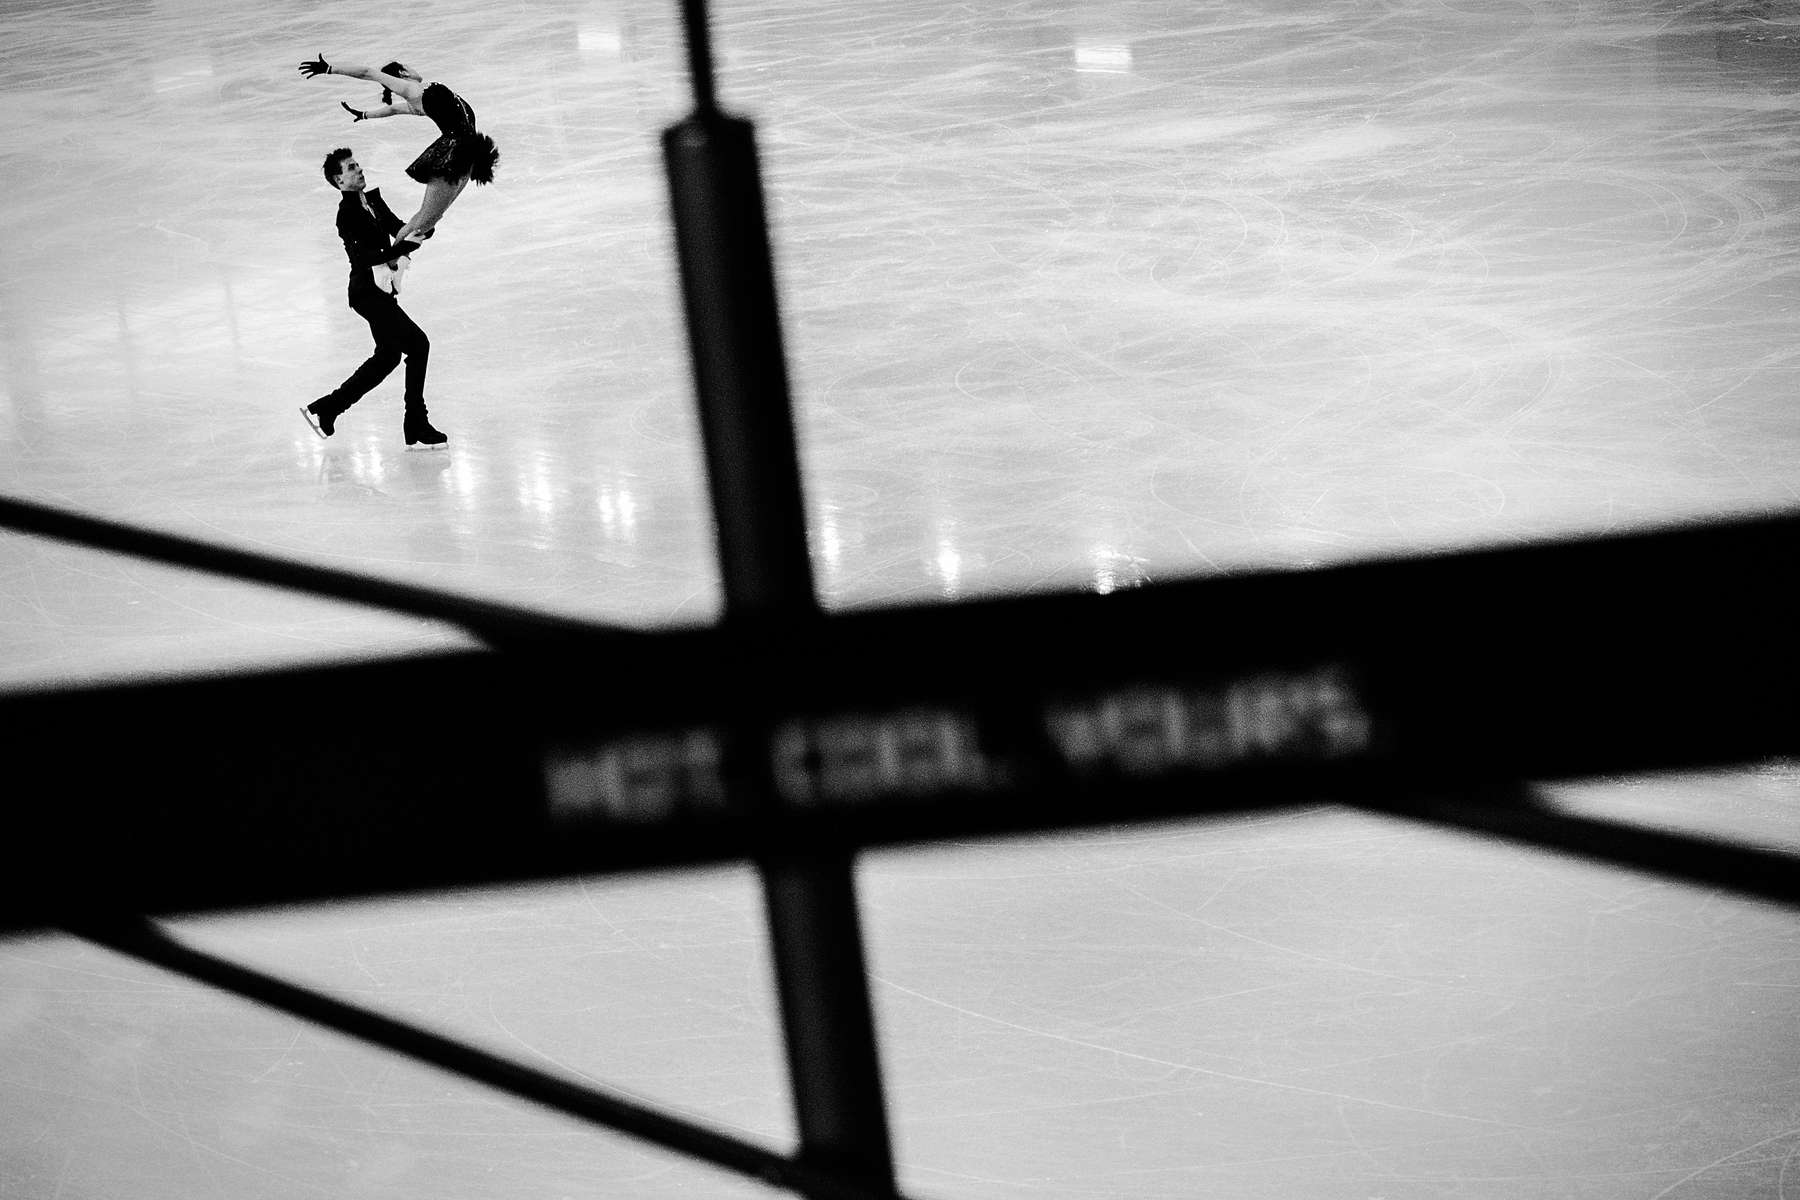 Pair Figure Skating Training.